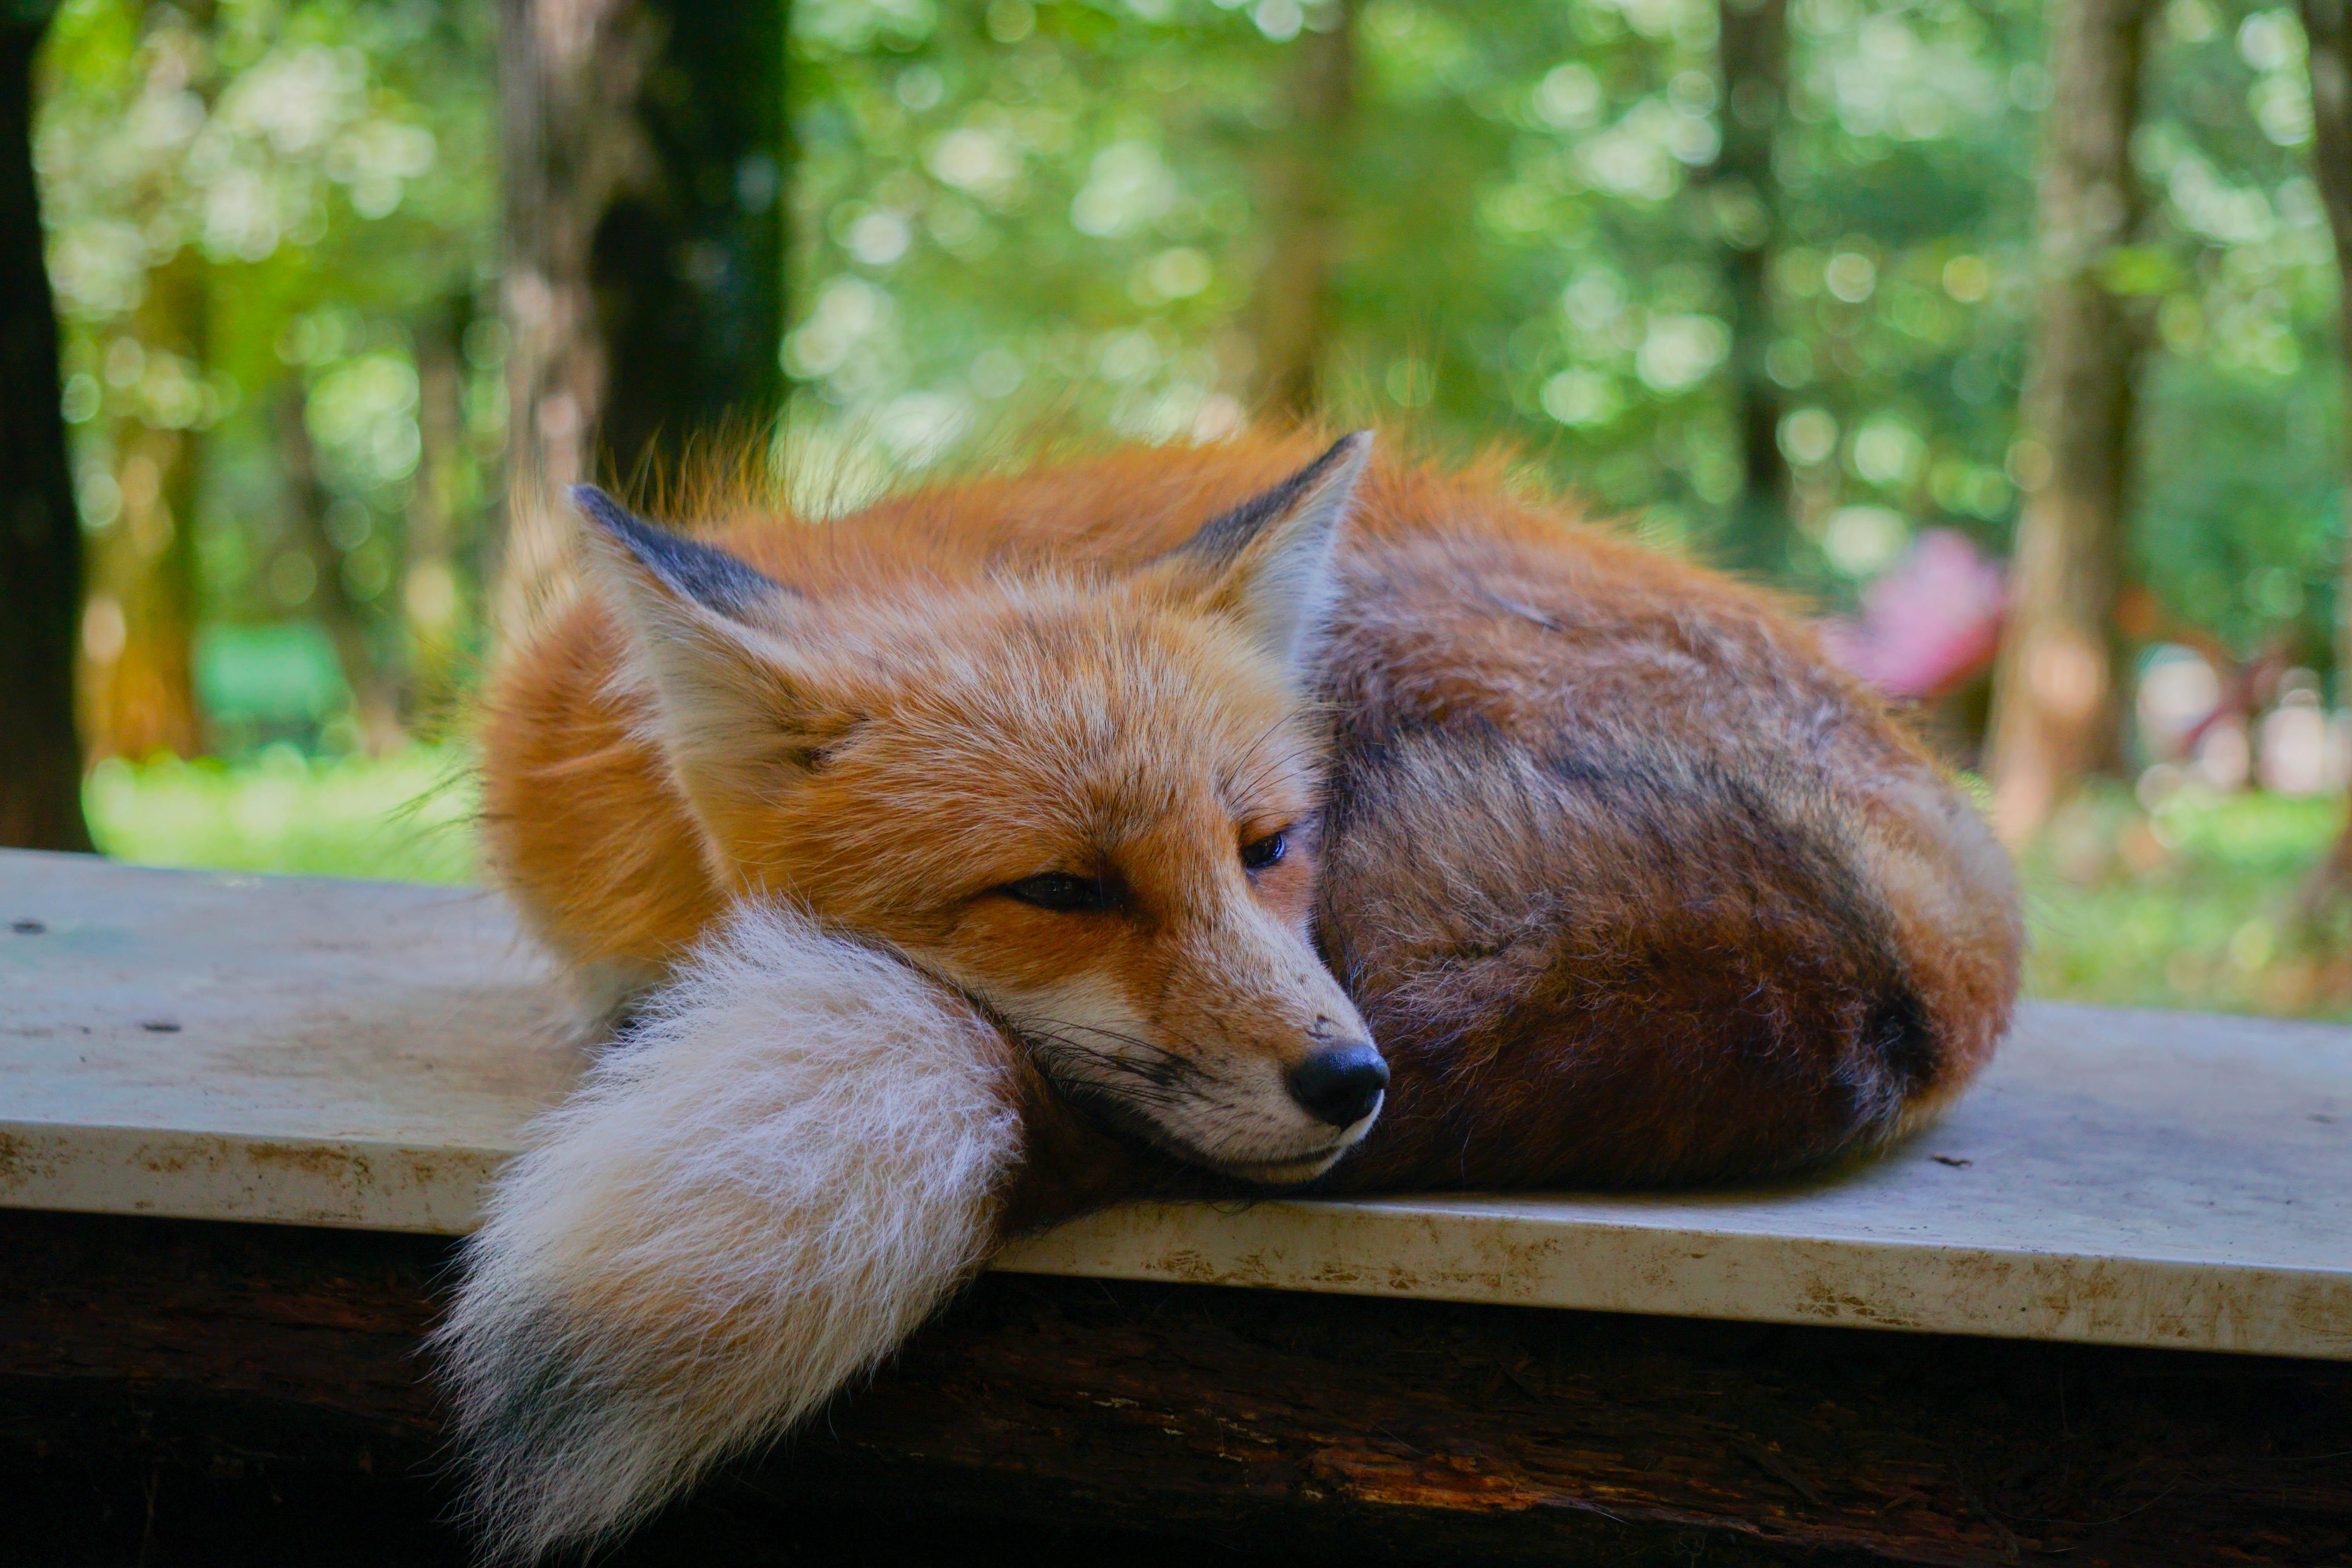 Foxy is resting. : foxes